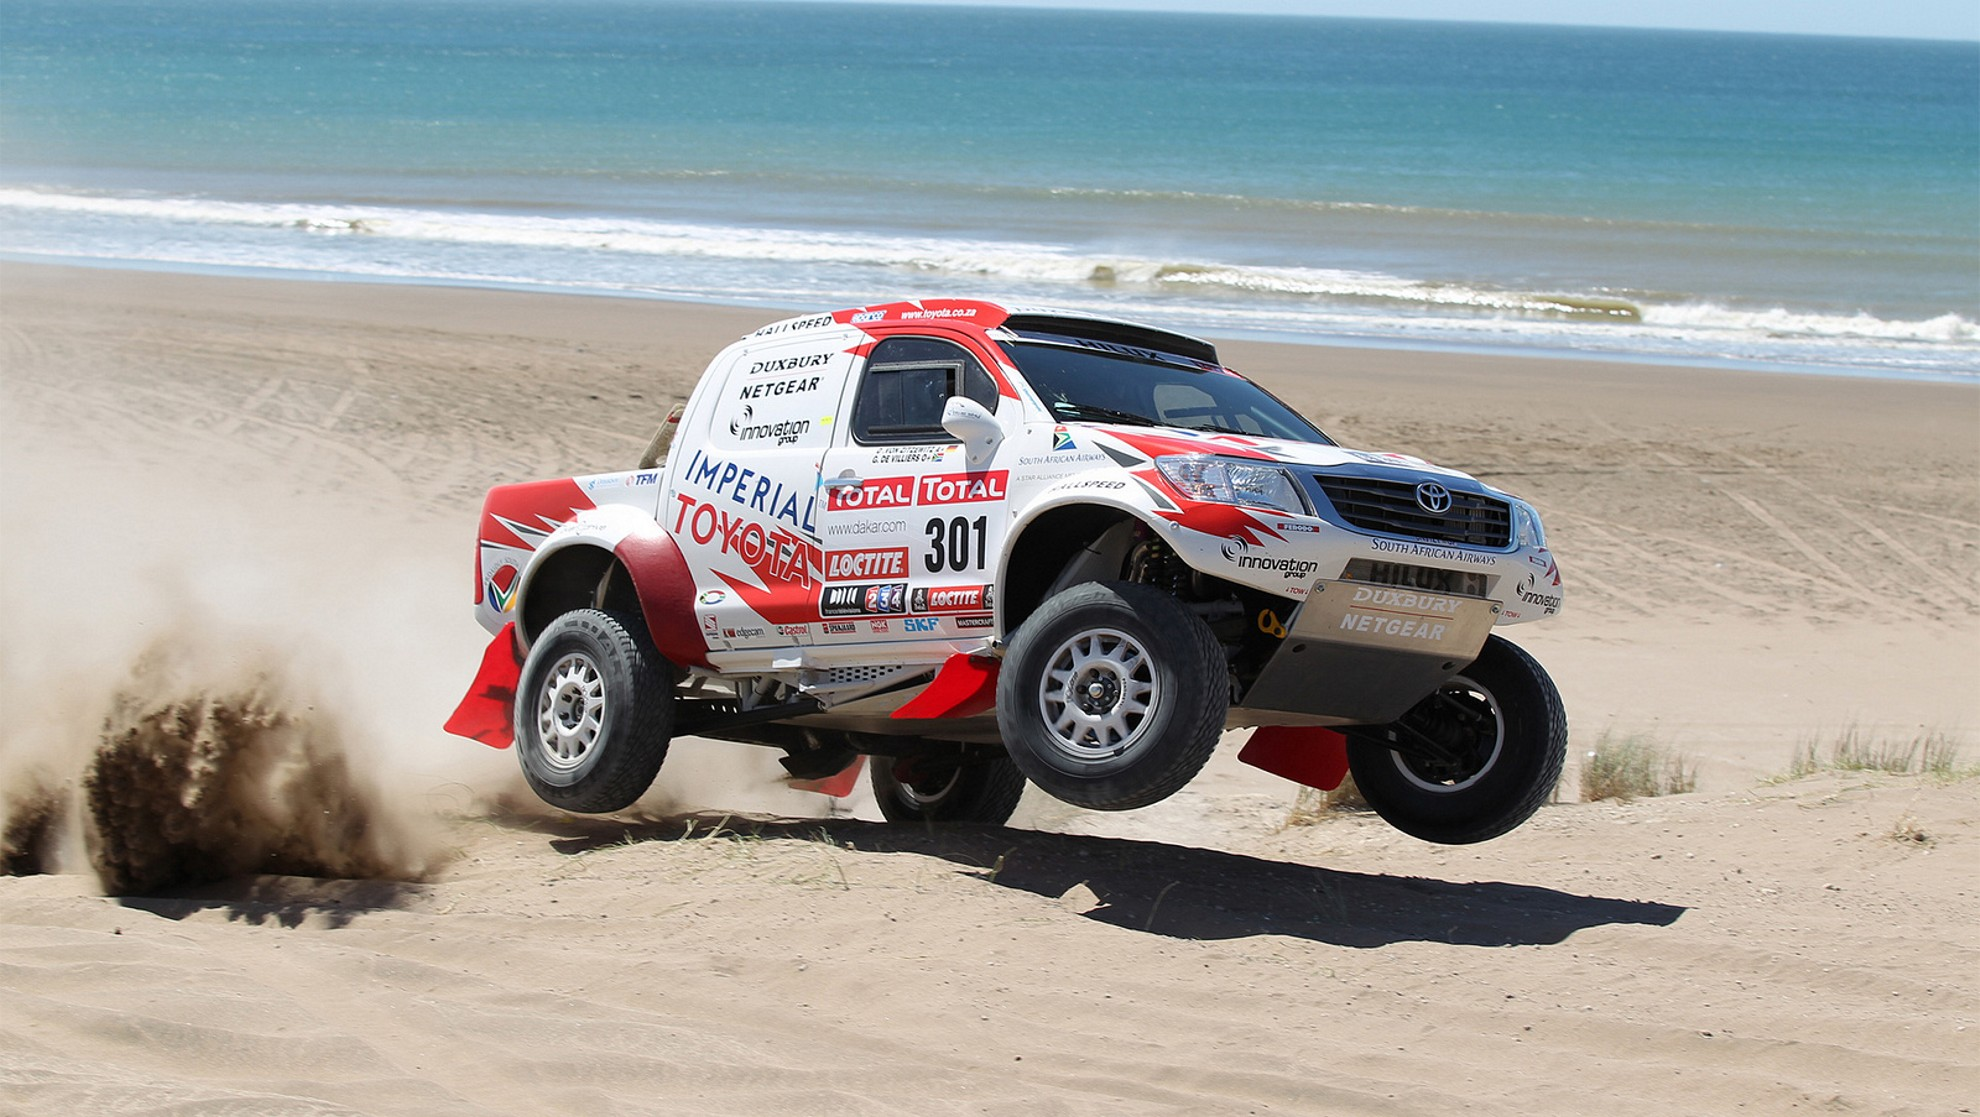 Toyota-Hilux-Goodwood-Festival-of-speed